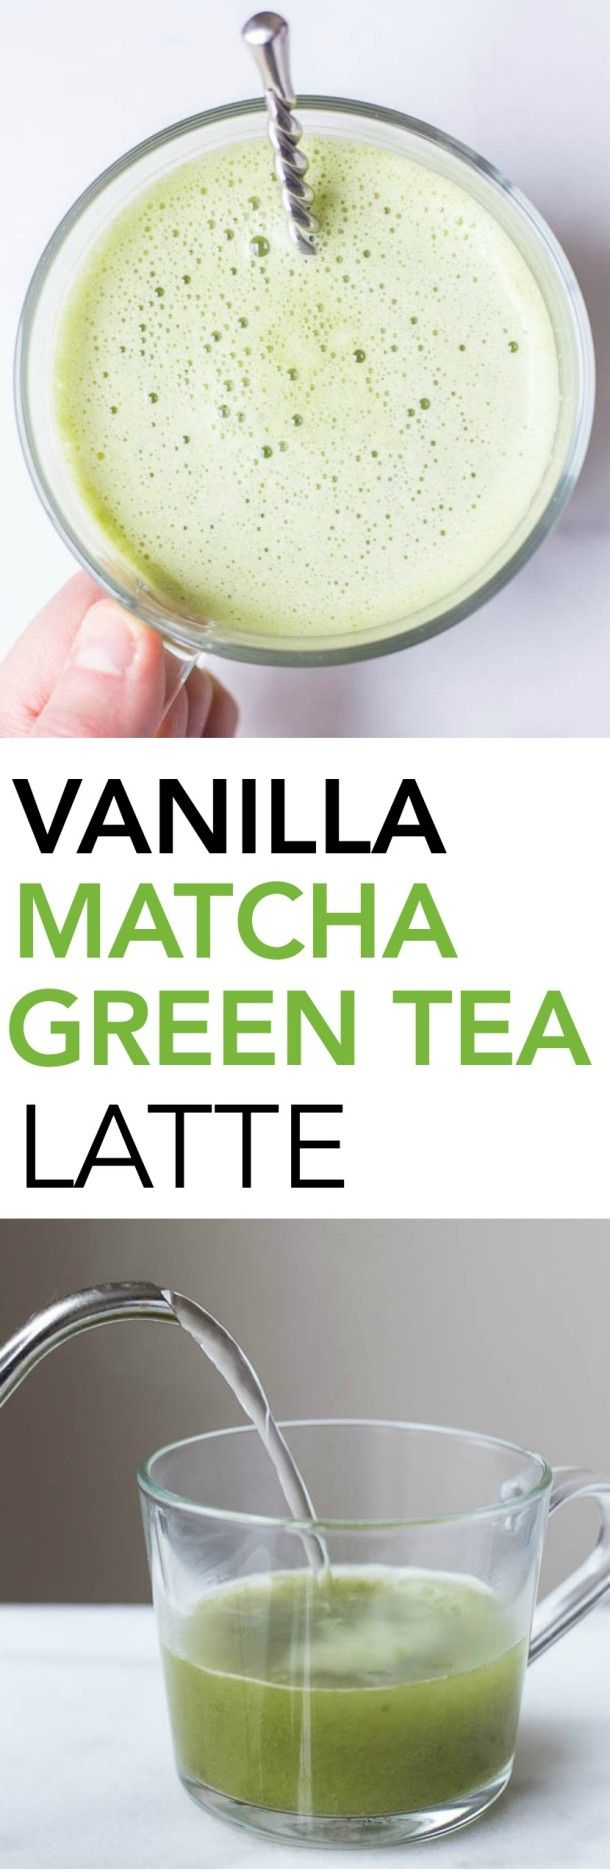 Vanilla Matcha Green Tea Latte: a dairy free, vegan, and healthy homemade green tea latte that only requires 4 ingredients! A Starbucks copycat! || fooduzzi.com recipe